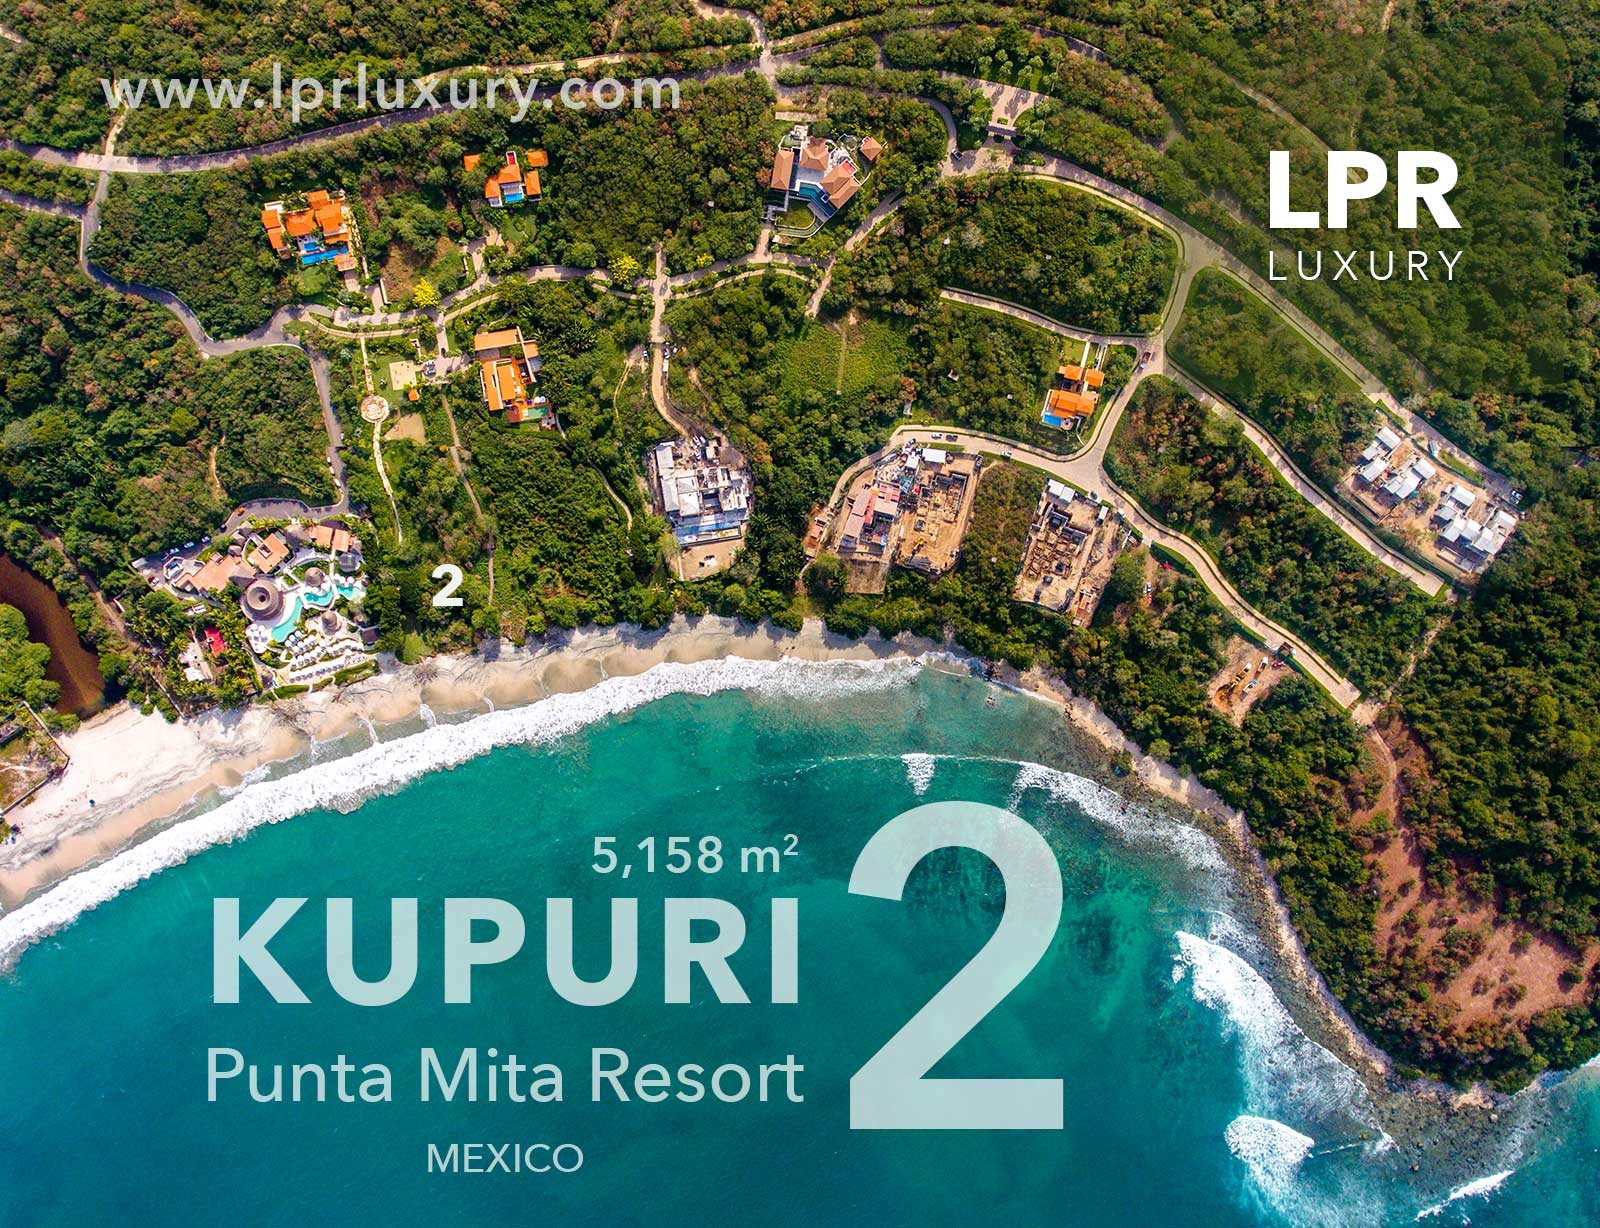 Kupuri Estate lot 2 - Punta Mita Resort, Riviera Nayarit, Mexico